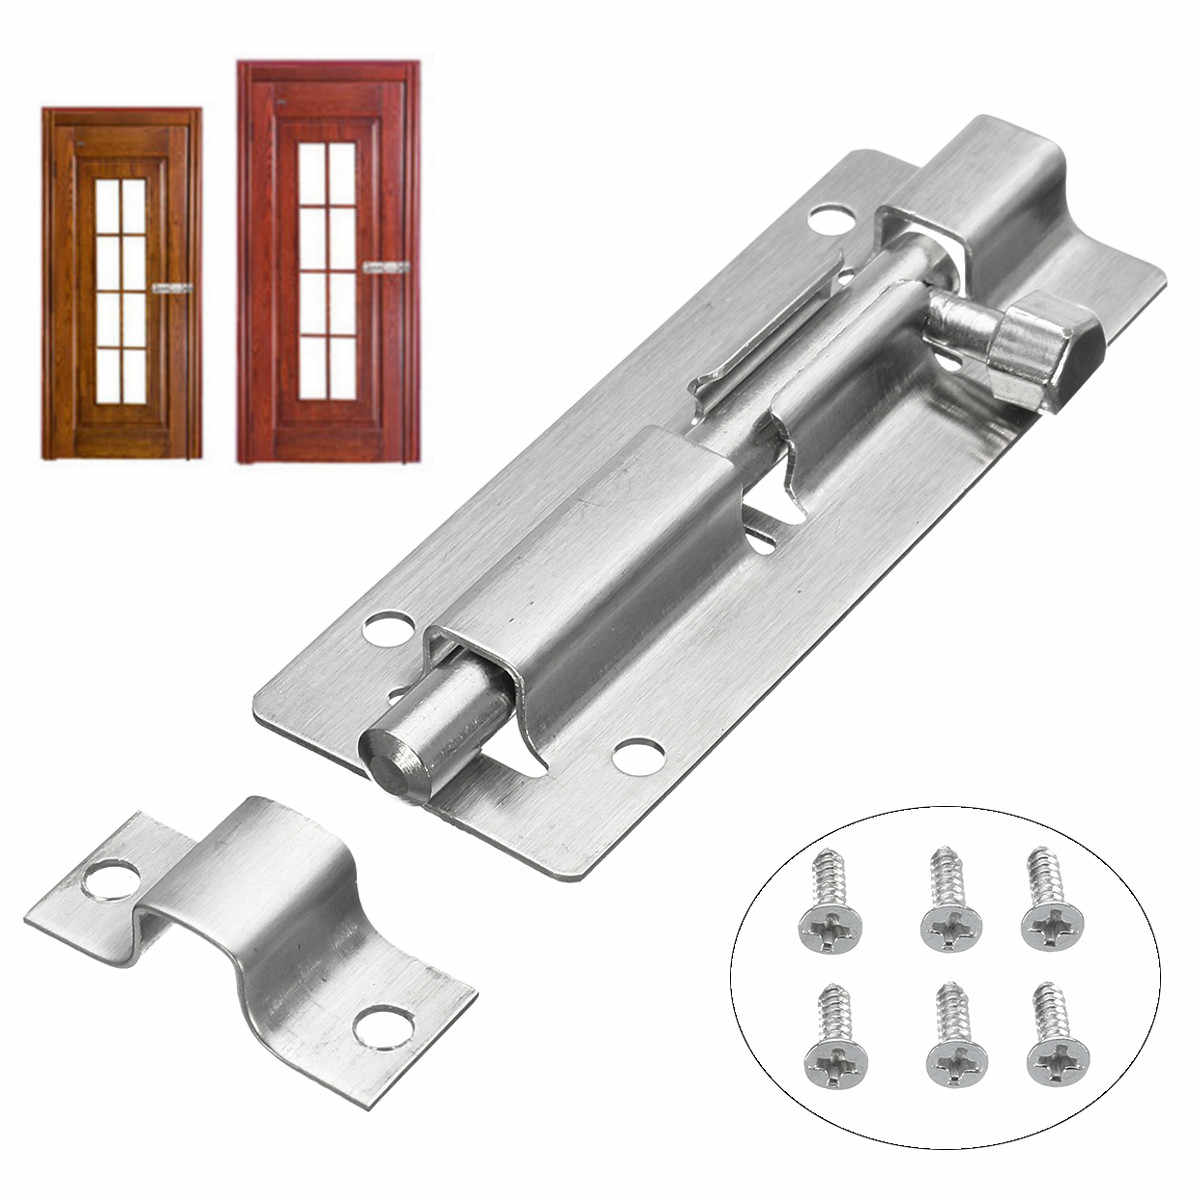 3inch Door Lock Set Home Gate Safety Door Slide Bolt Door Locker for Window Drawer Cupboard Locking Bathroom Bedroom Catch Latch